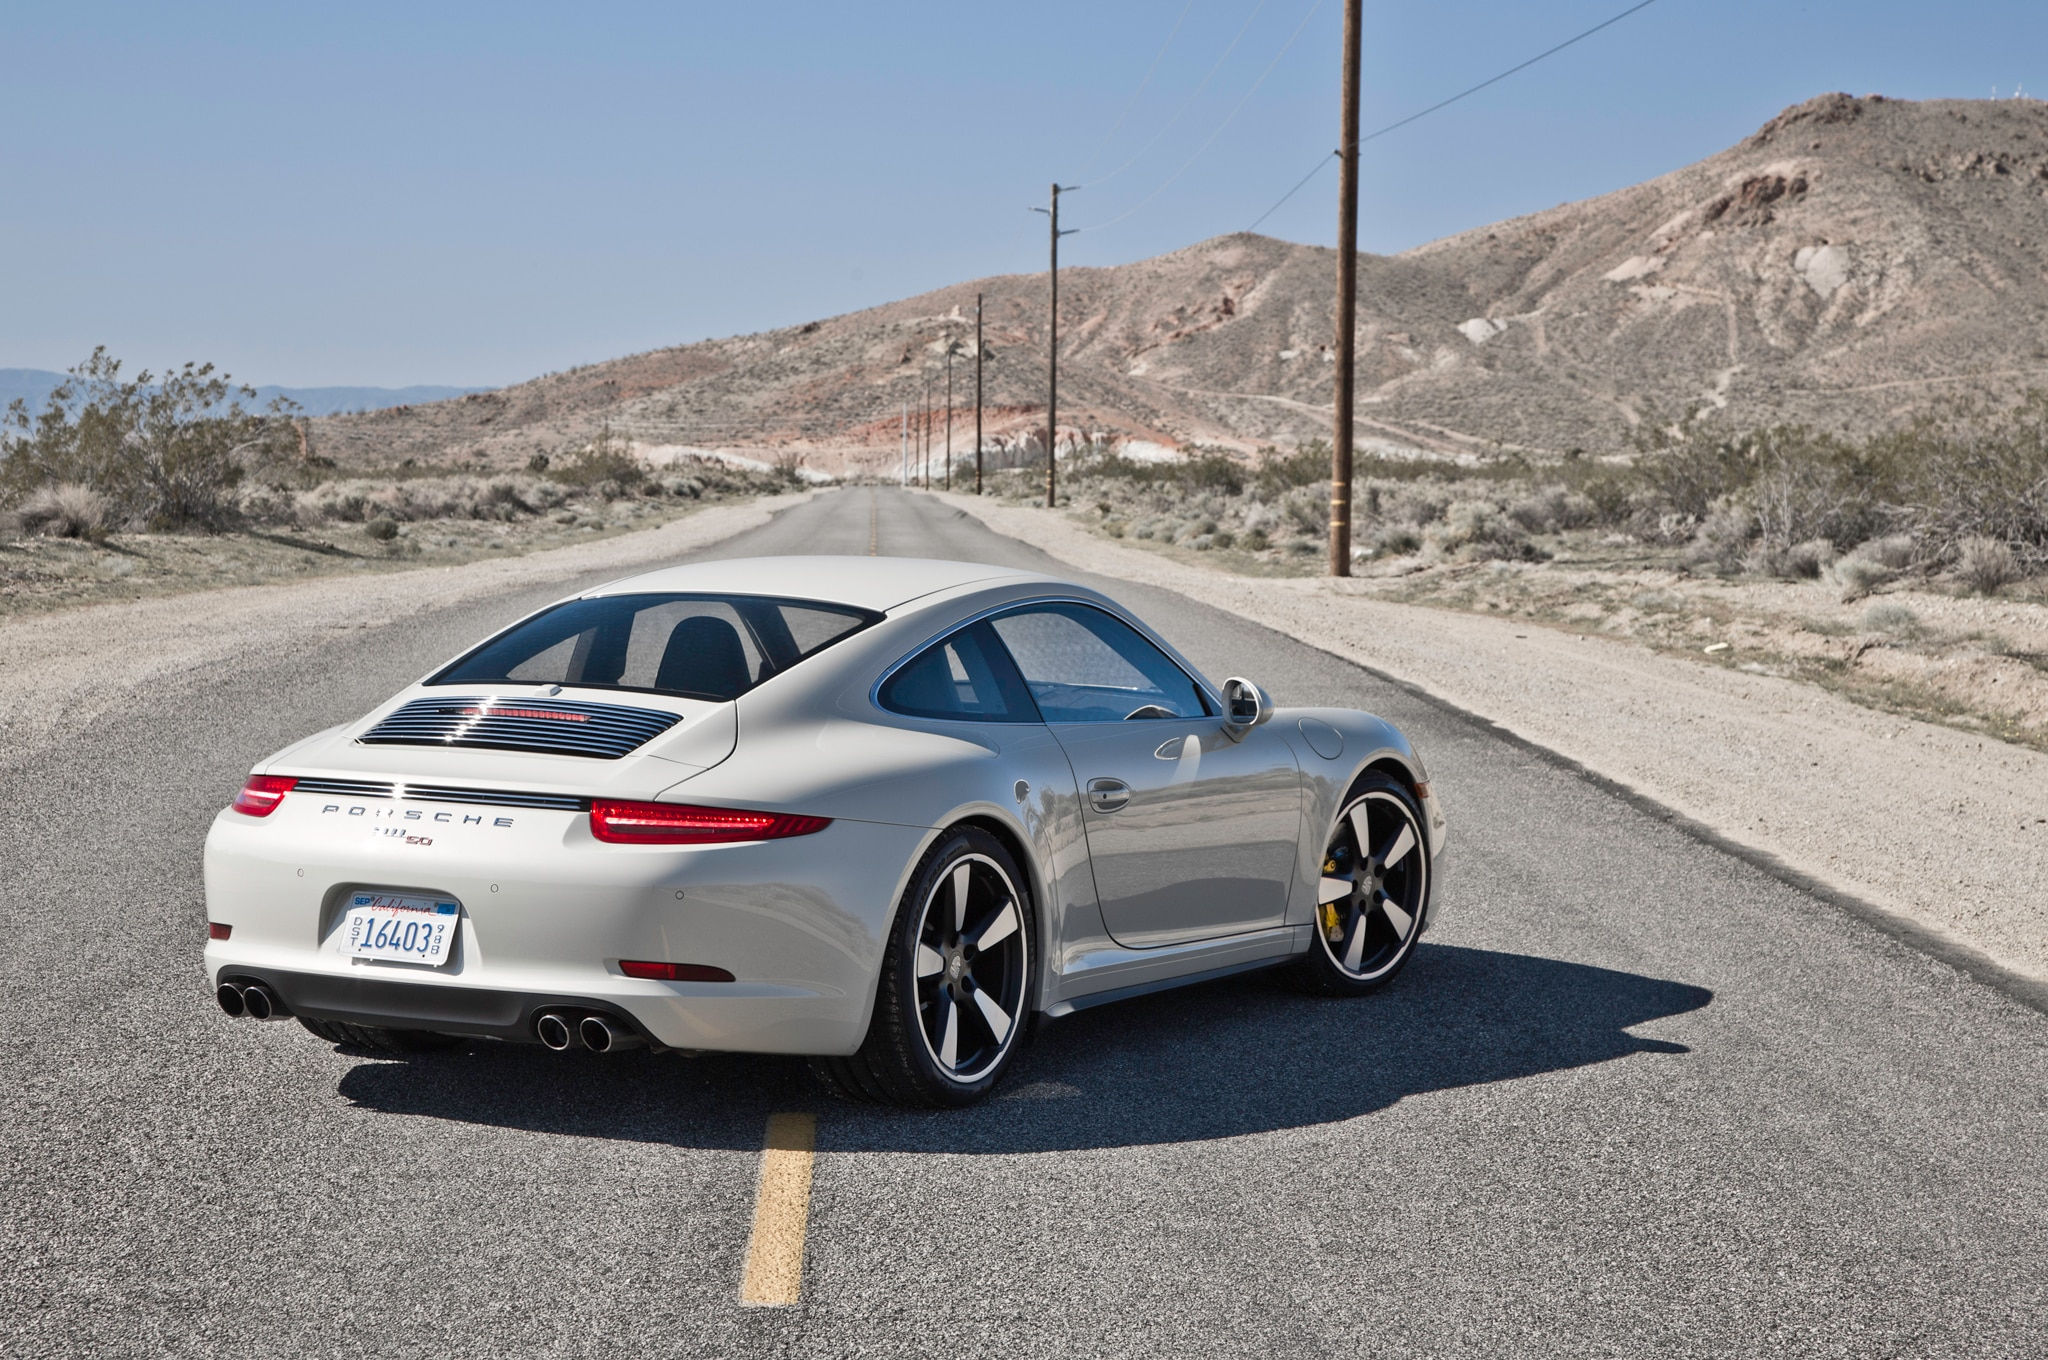 Report: Refreshed Porsche 911 To Debut In 2015